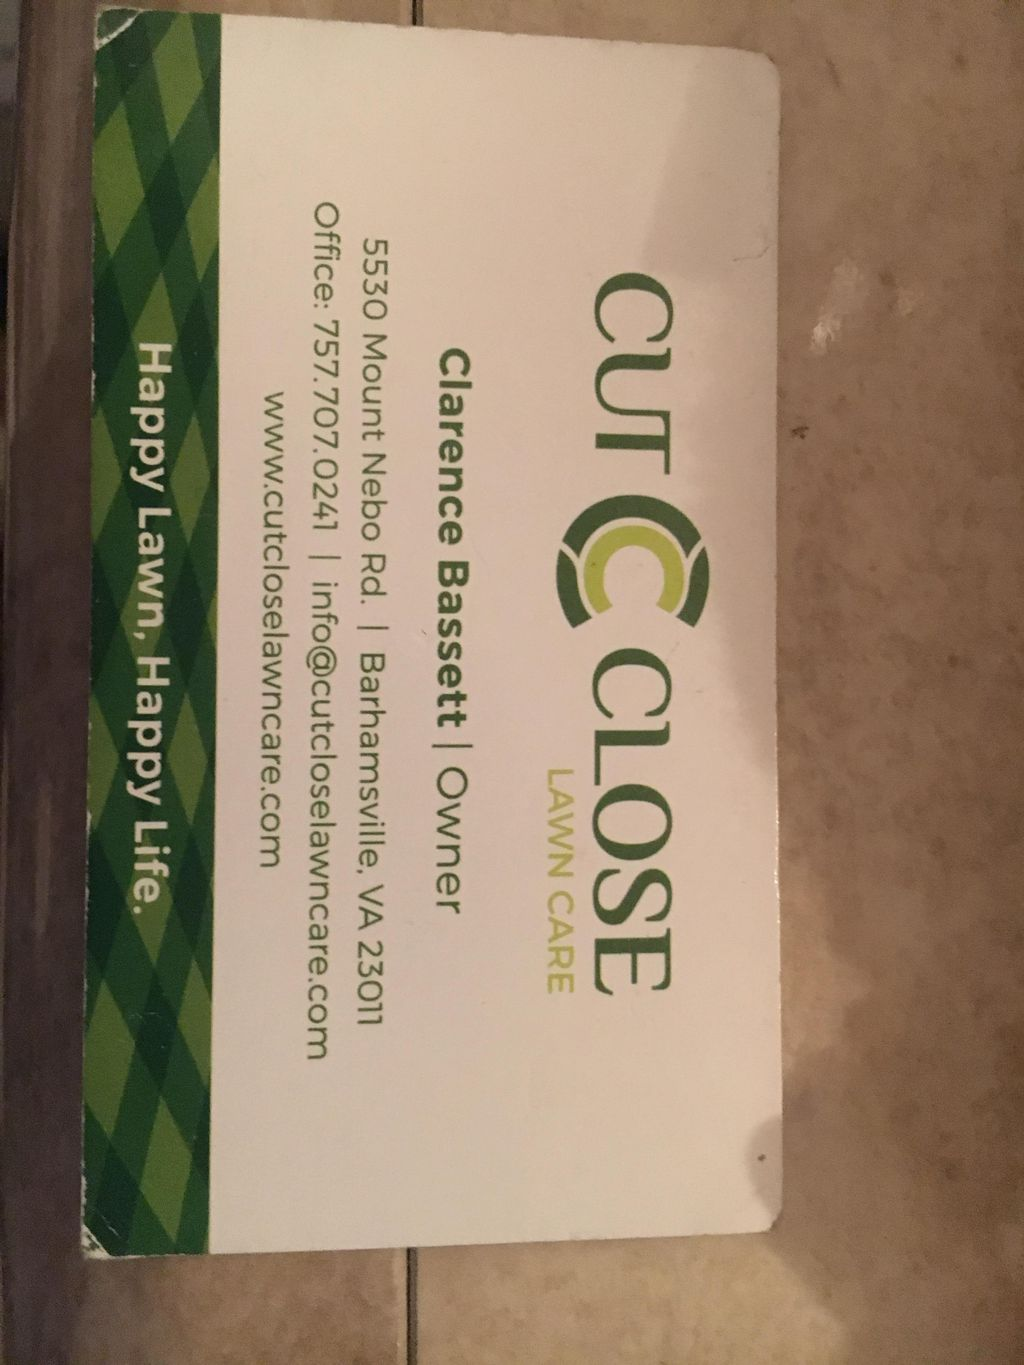 Cut Close Lawn Care LLC